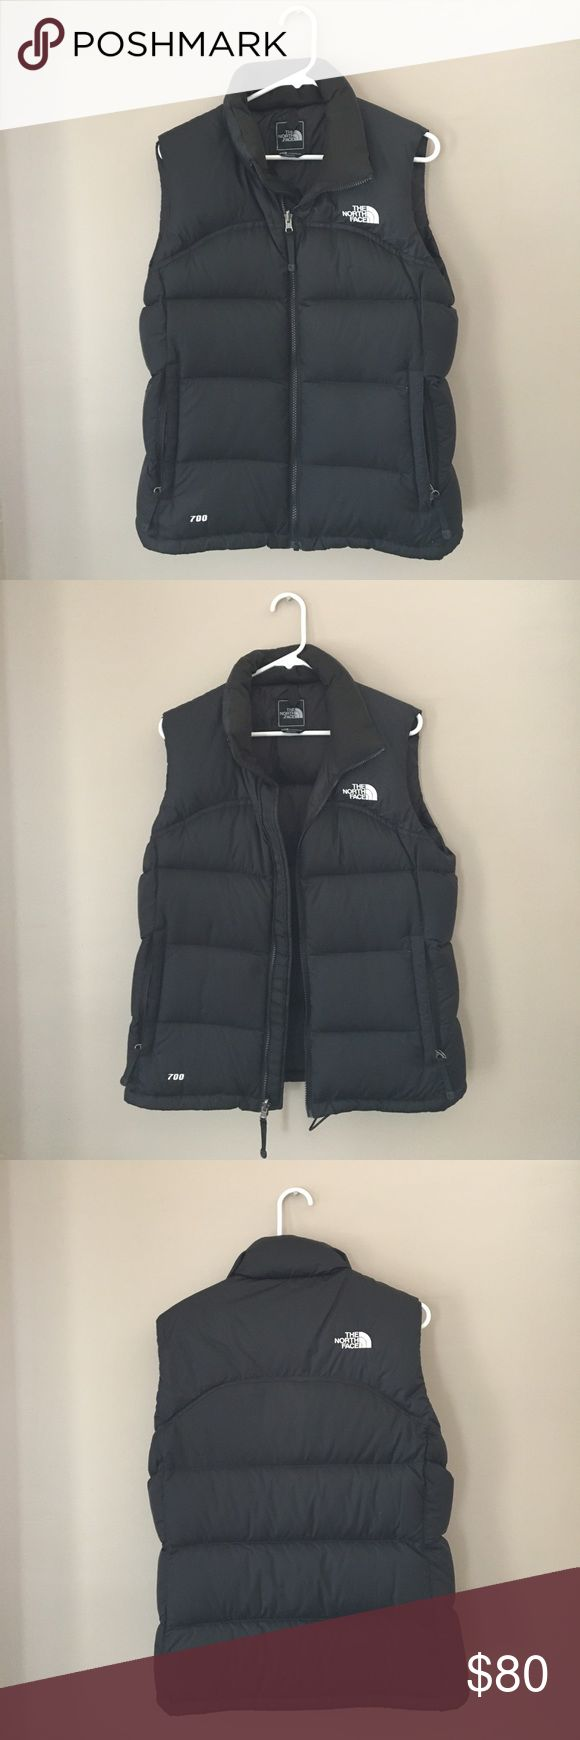 NWT The North Face Women's Nuptse Vest Black Sz M NEW WITH TAGS - NEVER WORN - Women's Nuptse Vest with 700 Fill Goose Down. Black size medium. The North Face Jackets & Coats Vests